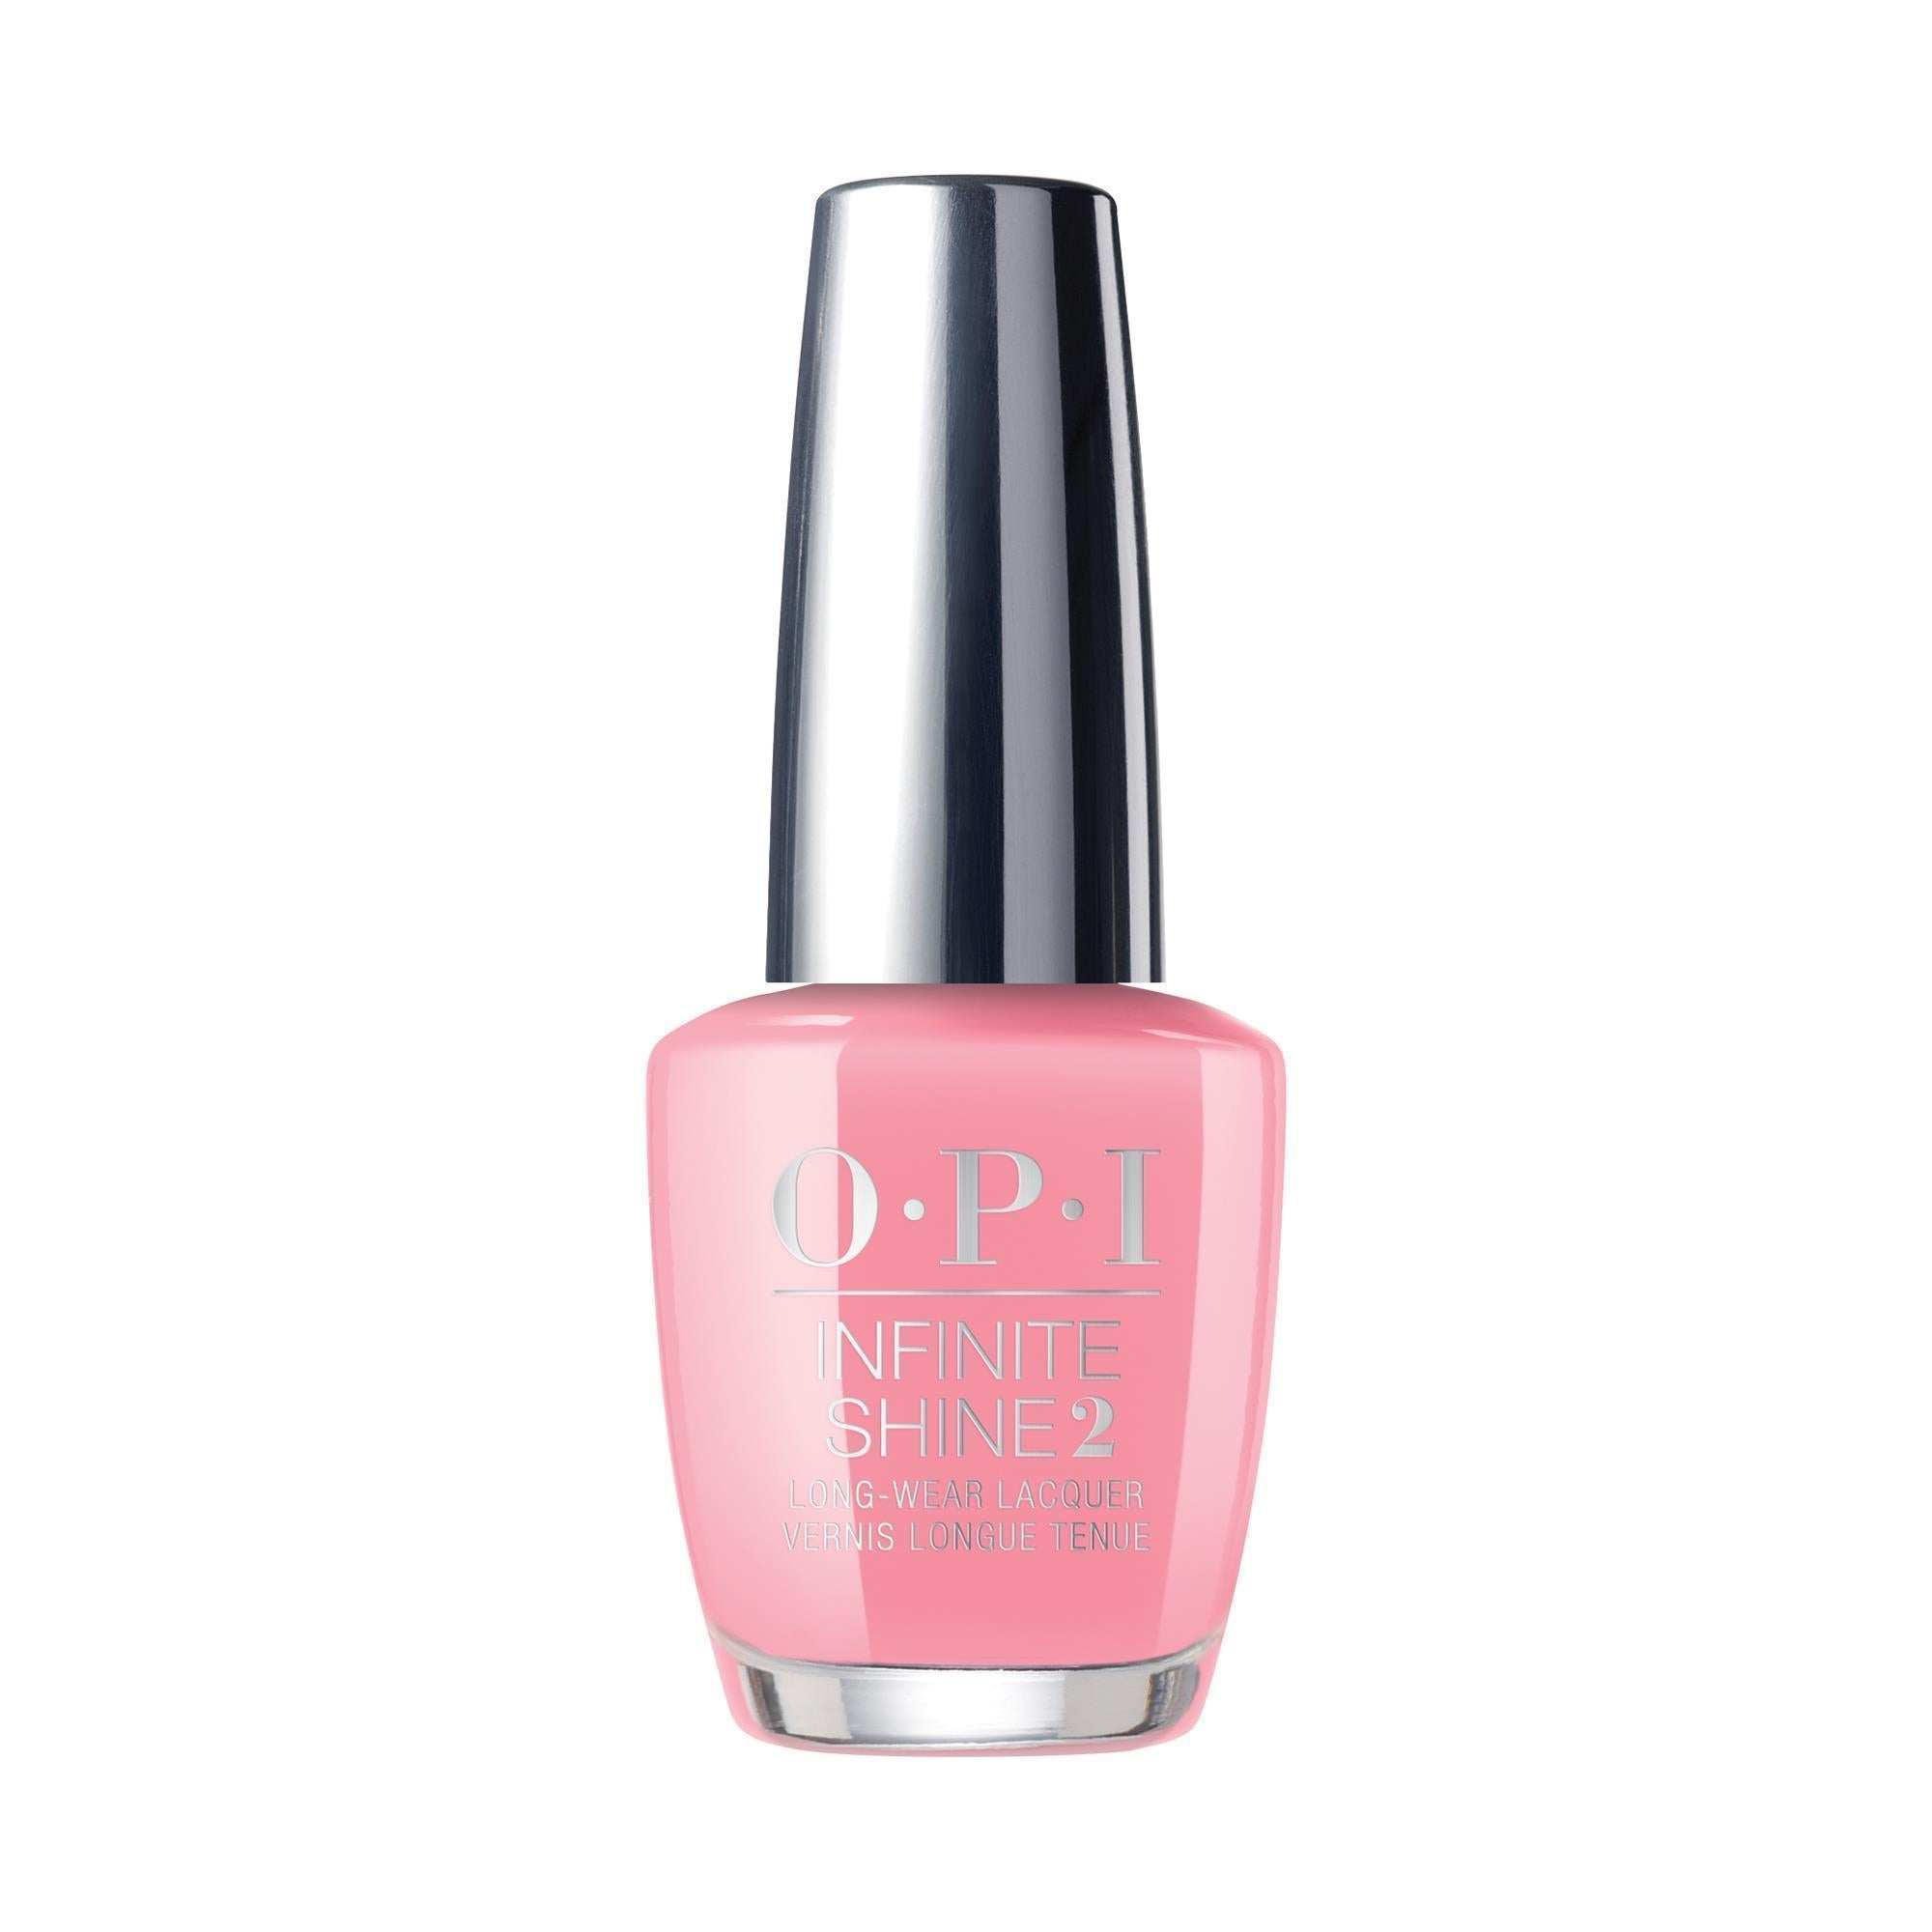 Nail Lacquer & Polish Pink Ladies Rule the School OPI Grease Collection/Infinite Shine